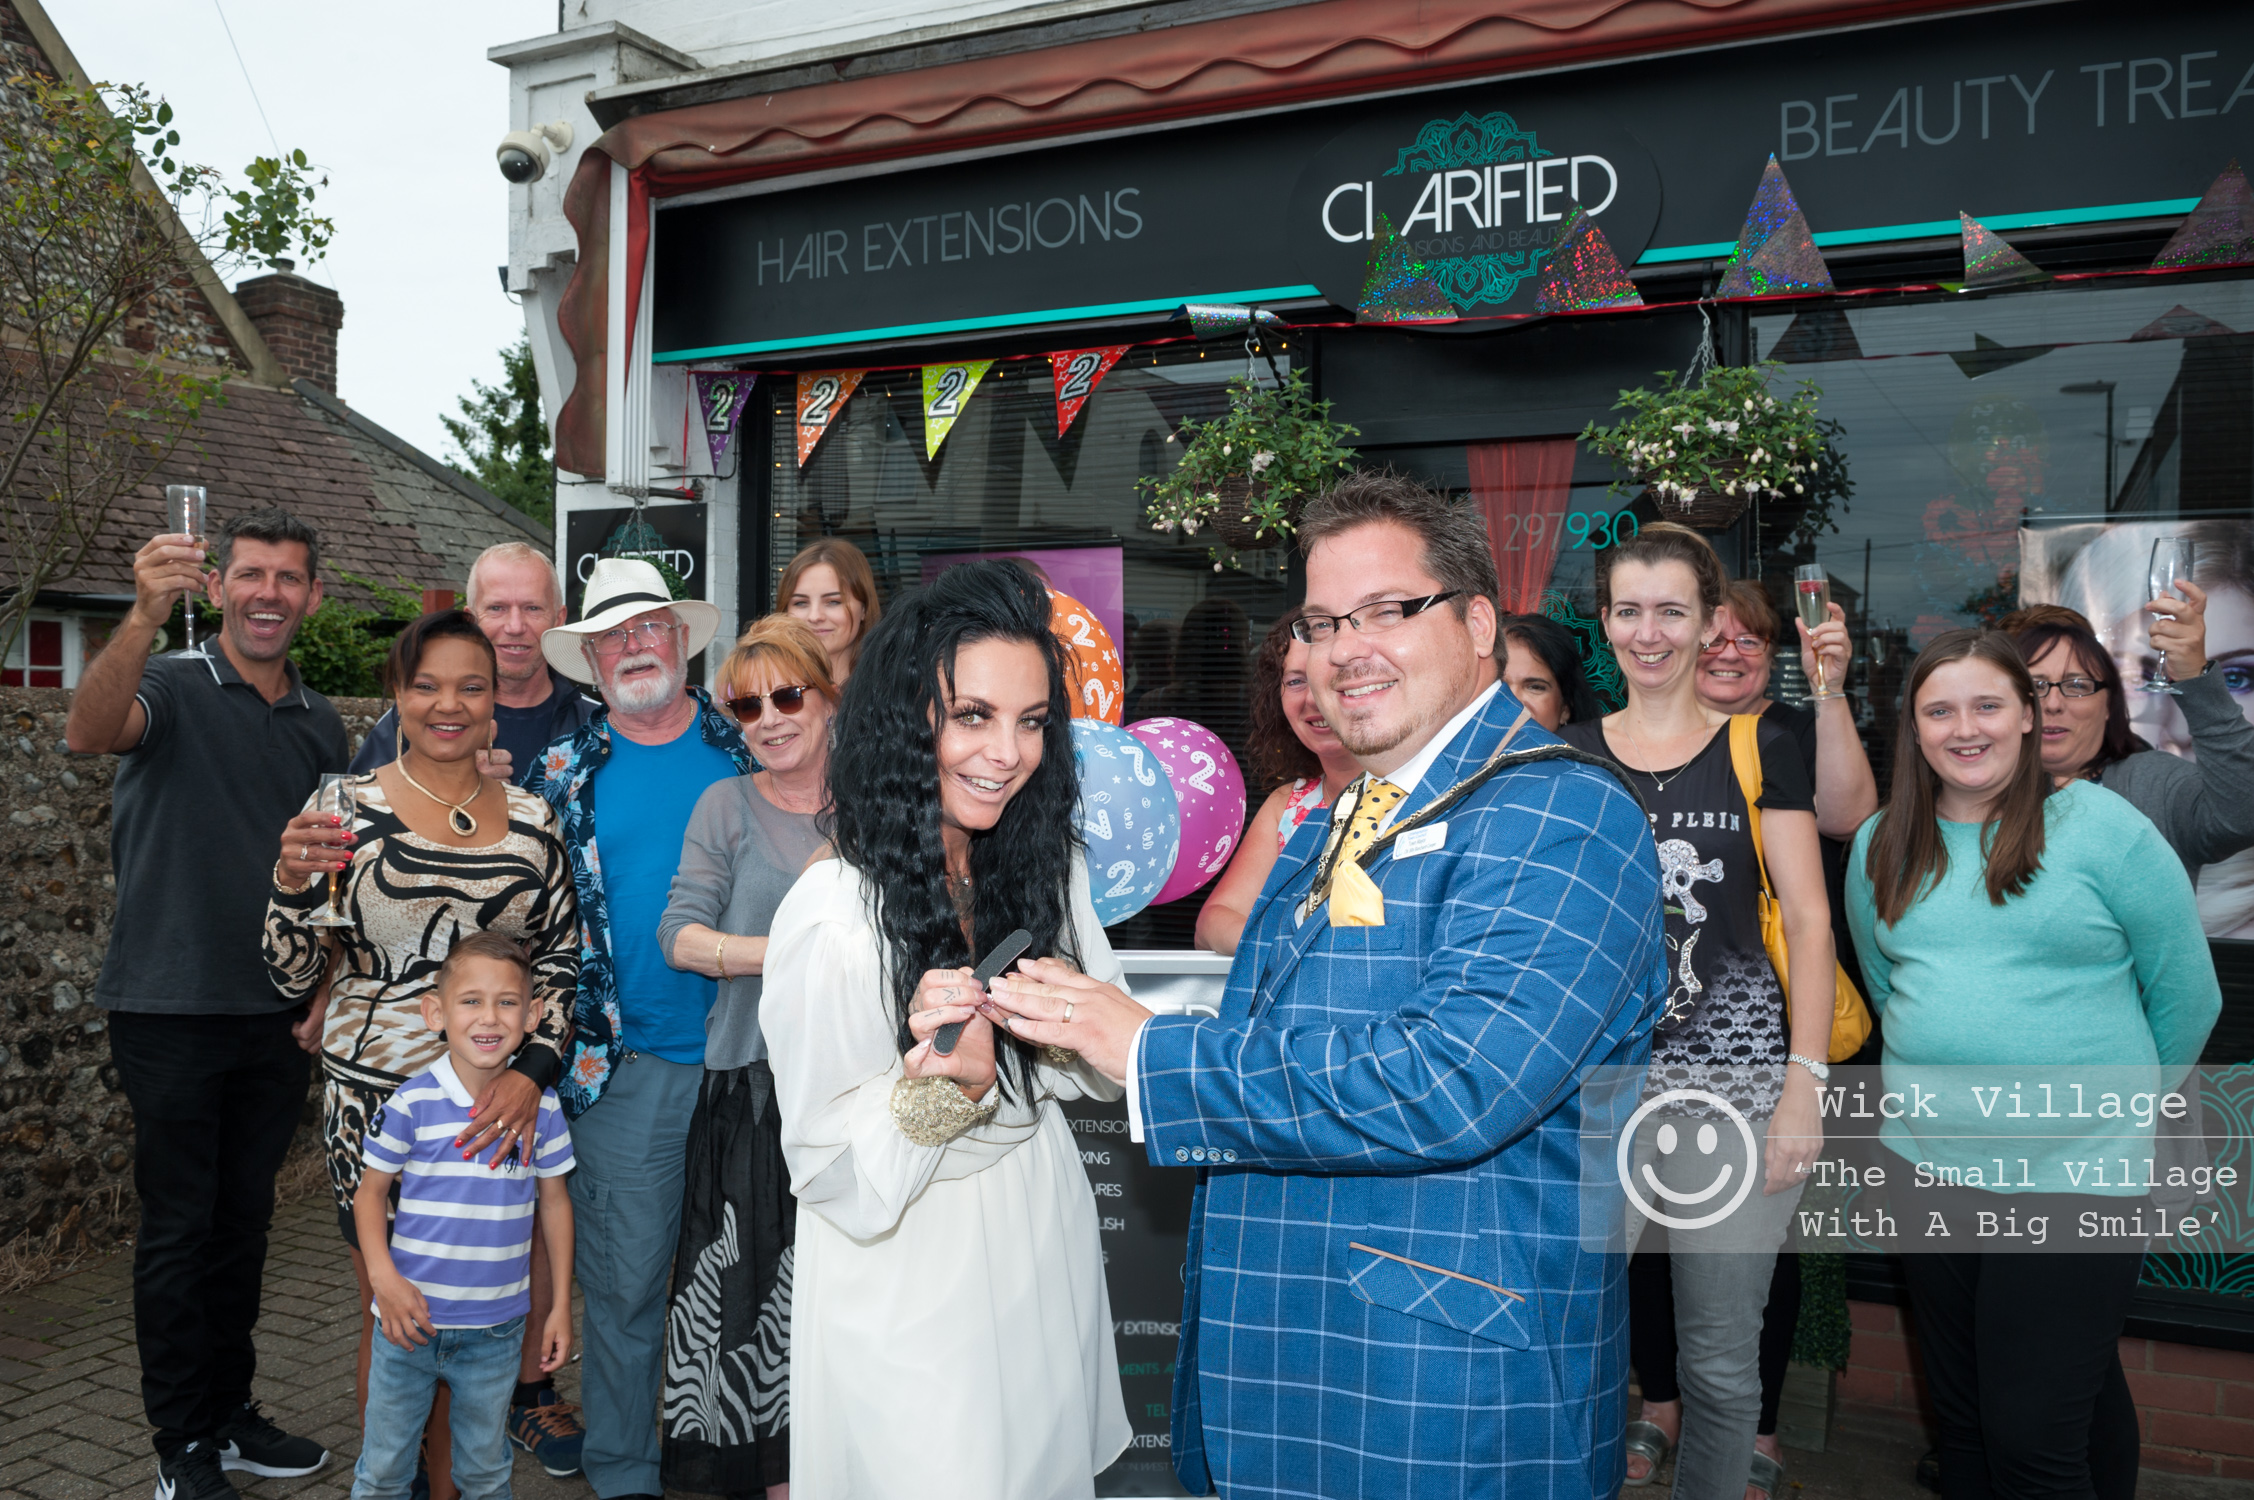 Clare Louise, owner of Clarified Extensions & Beauty, gives the Littlehampton Town Mayor, Councillor Billy Blanchard-Cooper, a quick manicure when he visits the salon during the celebrations.